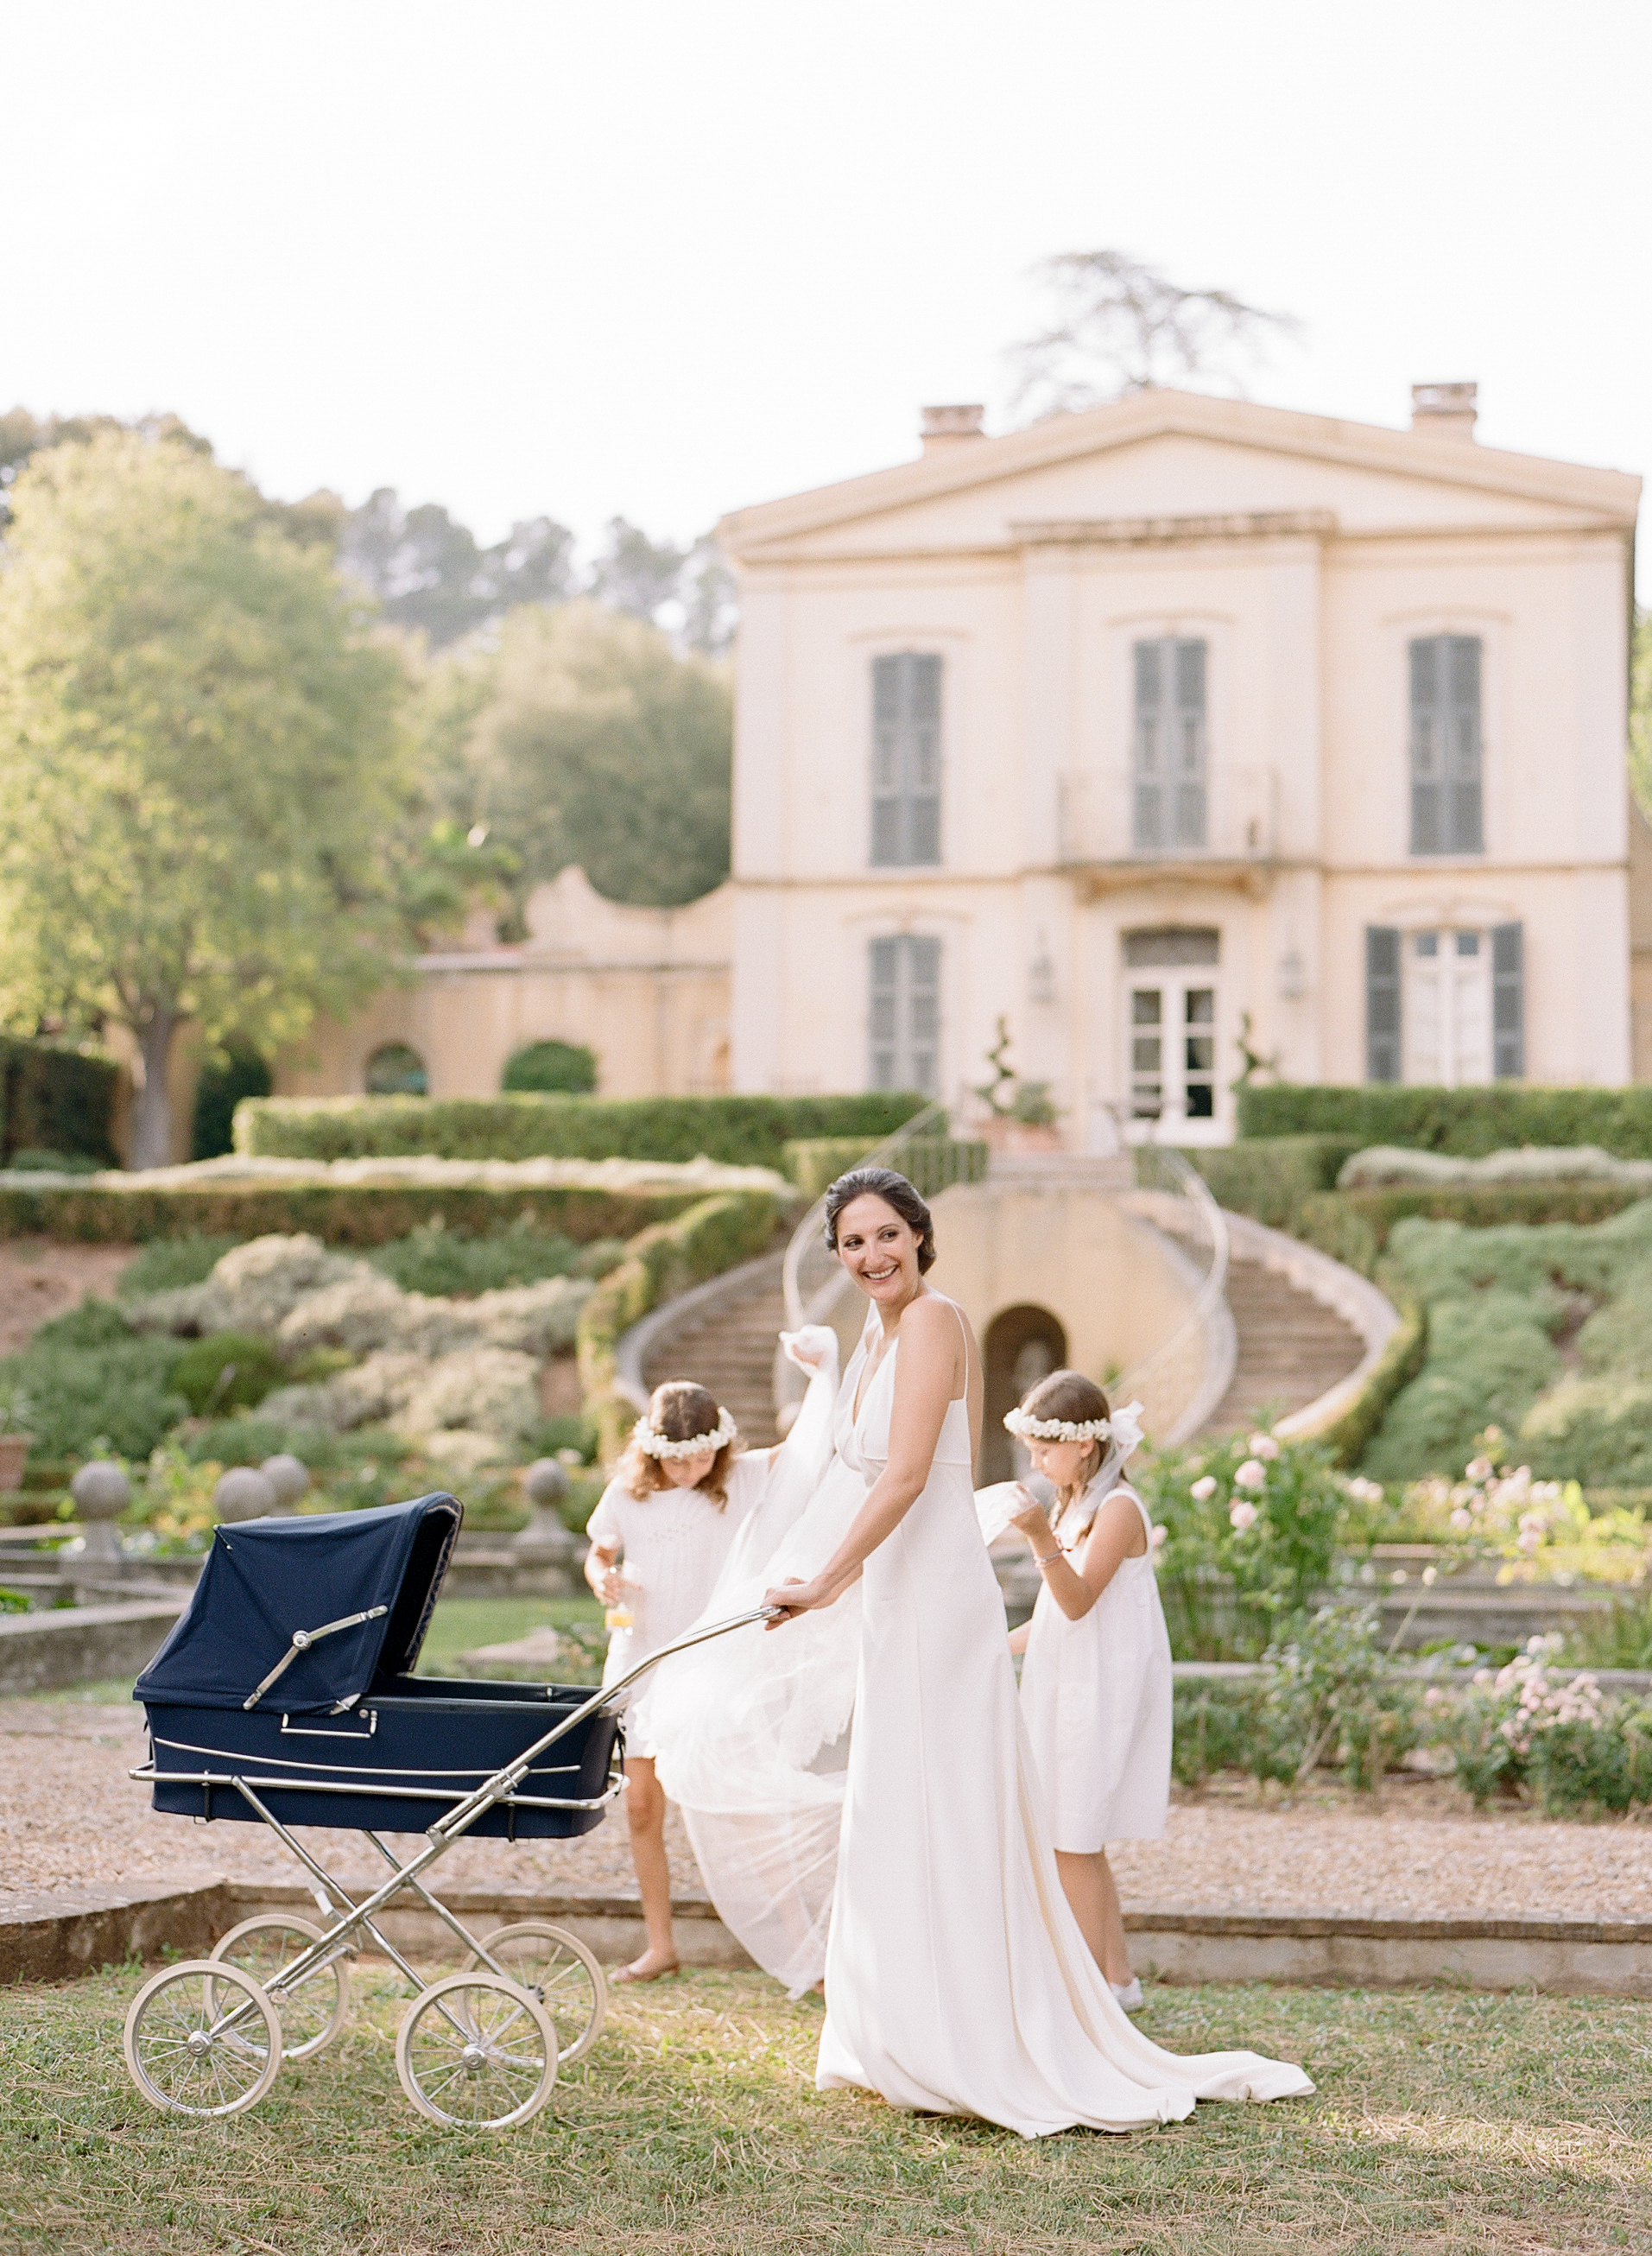 The bride pushes her baby in a pram with the flower girls; Sylvie Gil Photography